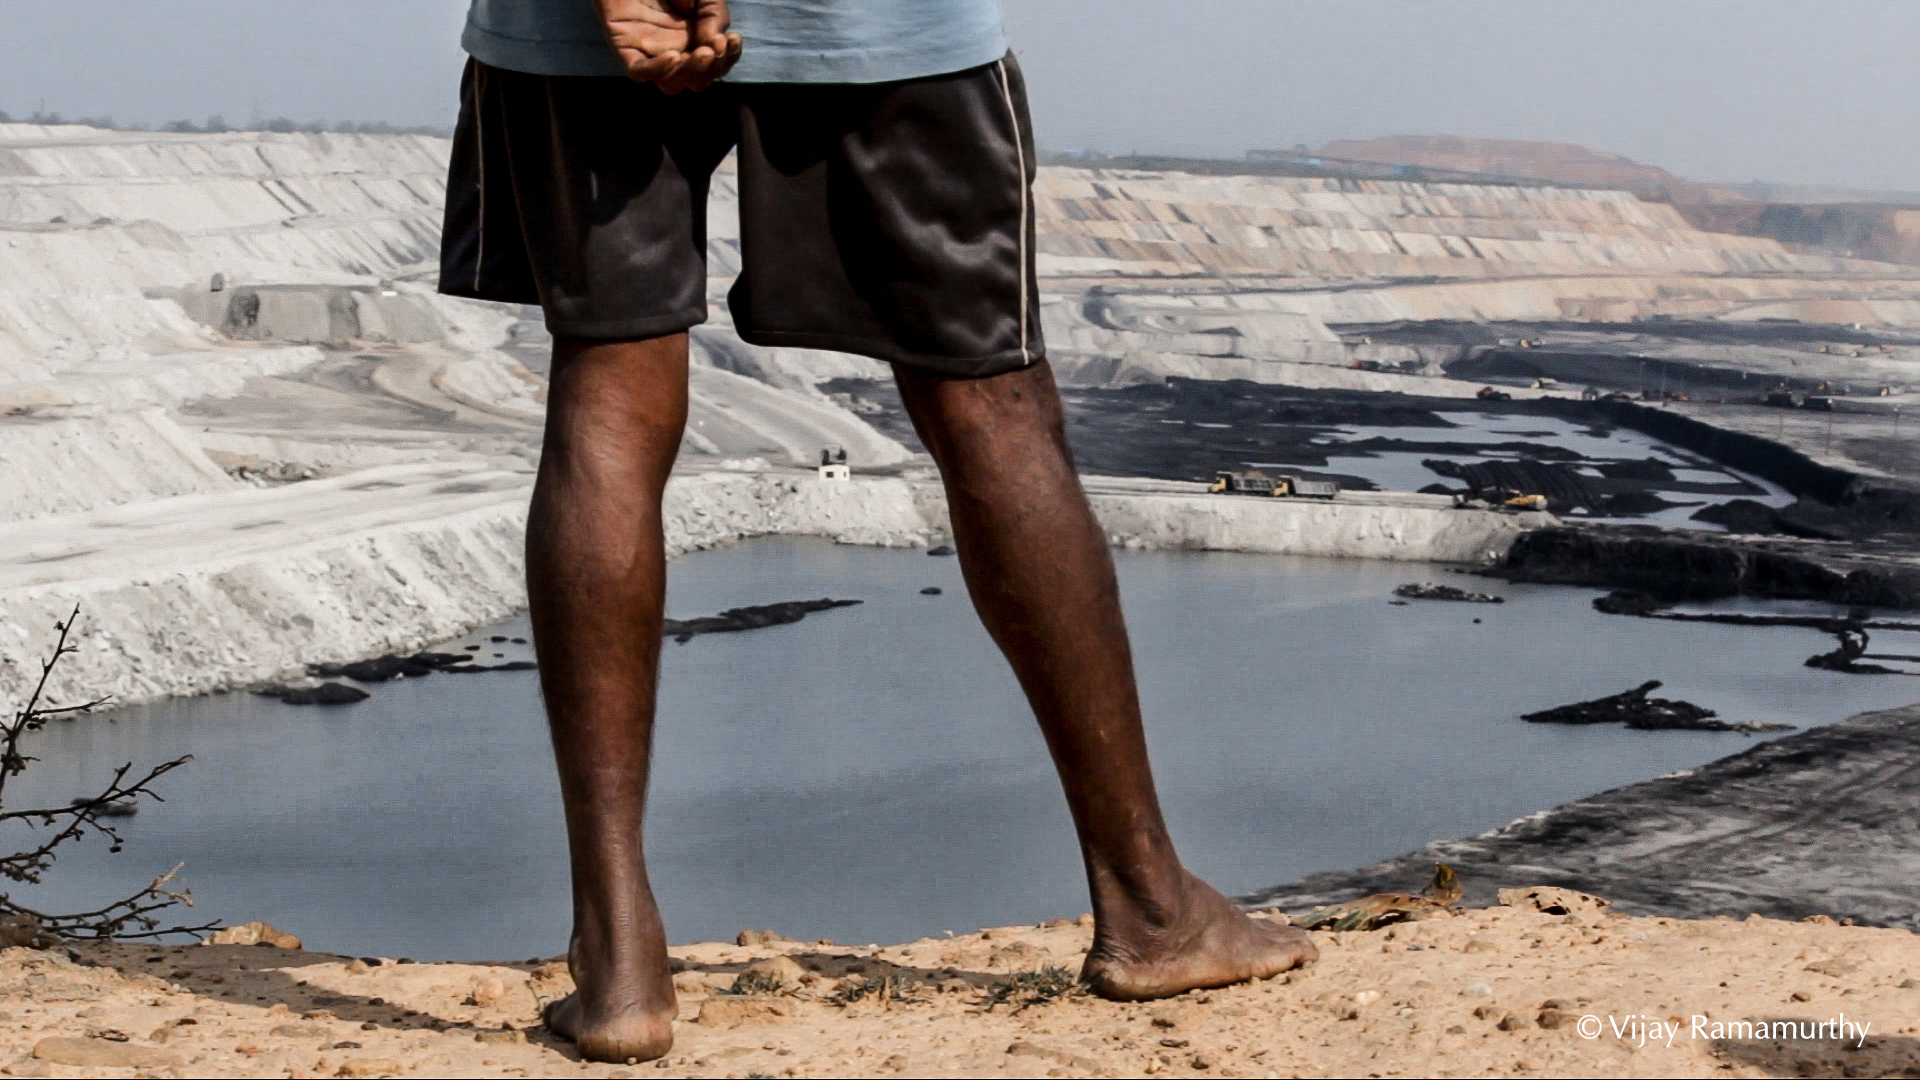 An indigenous forest dweller of India's Hasdeo area overlooks the Adani-operated PEKB mine that obliterated forests and ancestral lands. Photo V. Ramamurthy